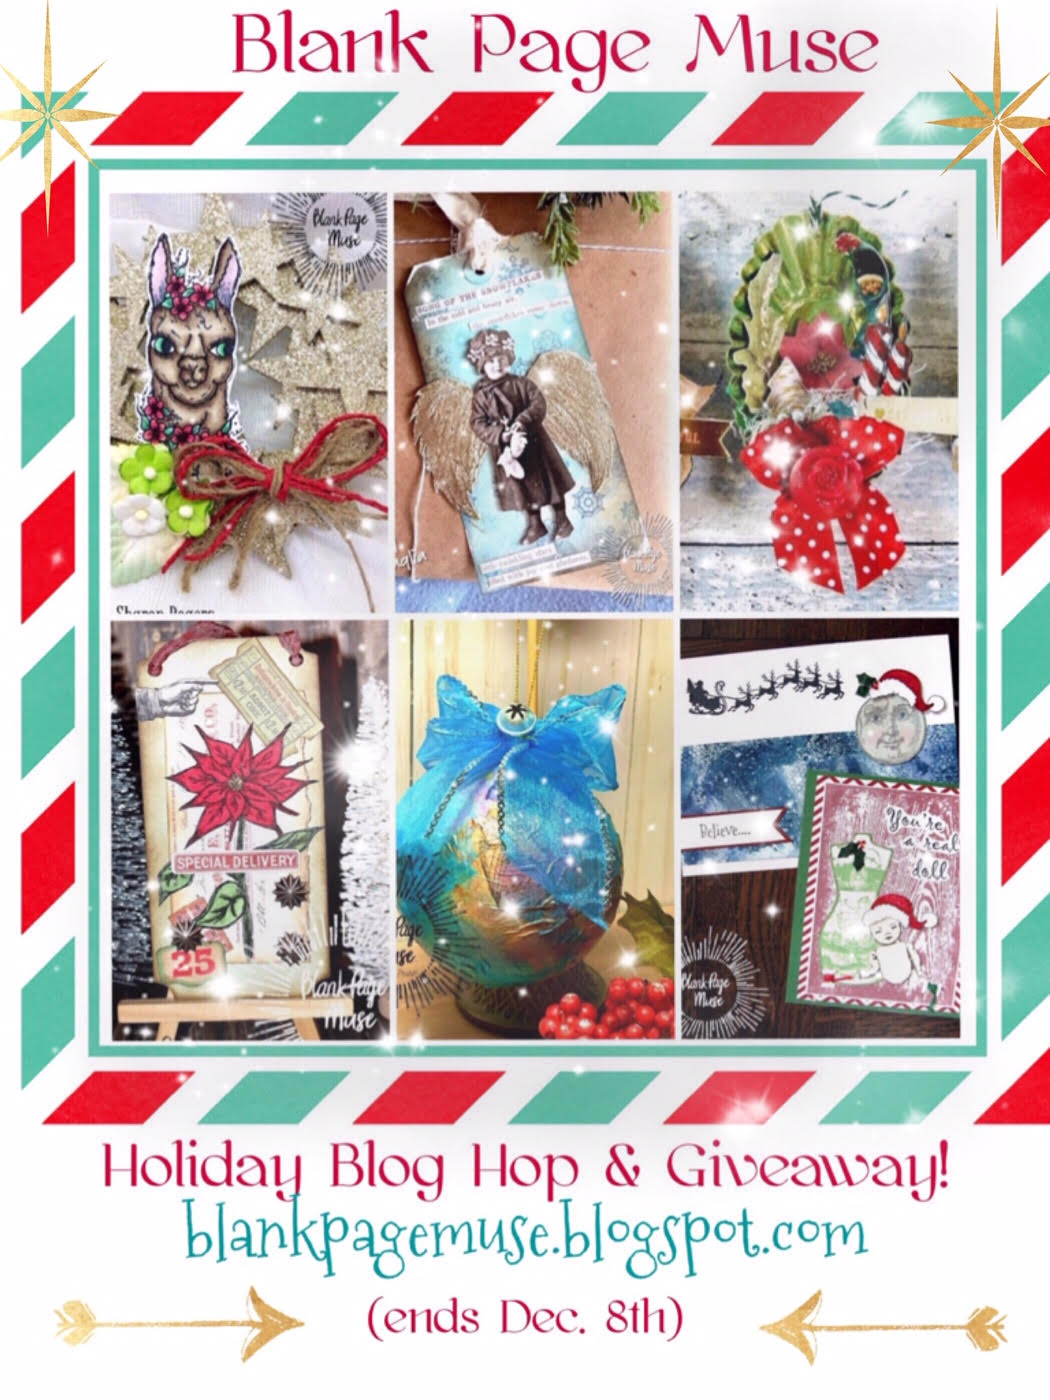 Holiday Blog Hop!